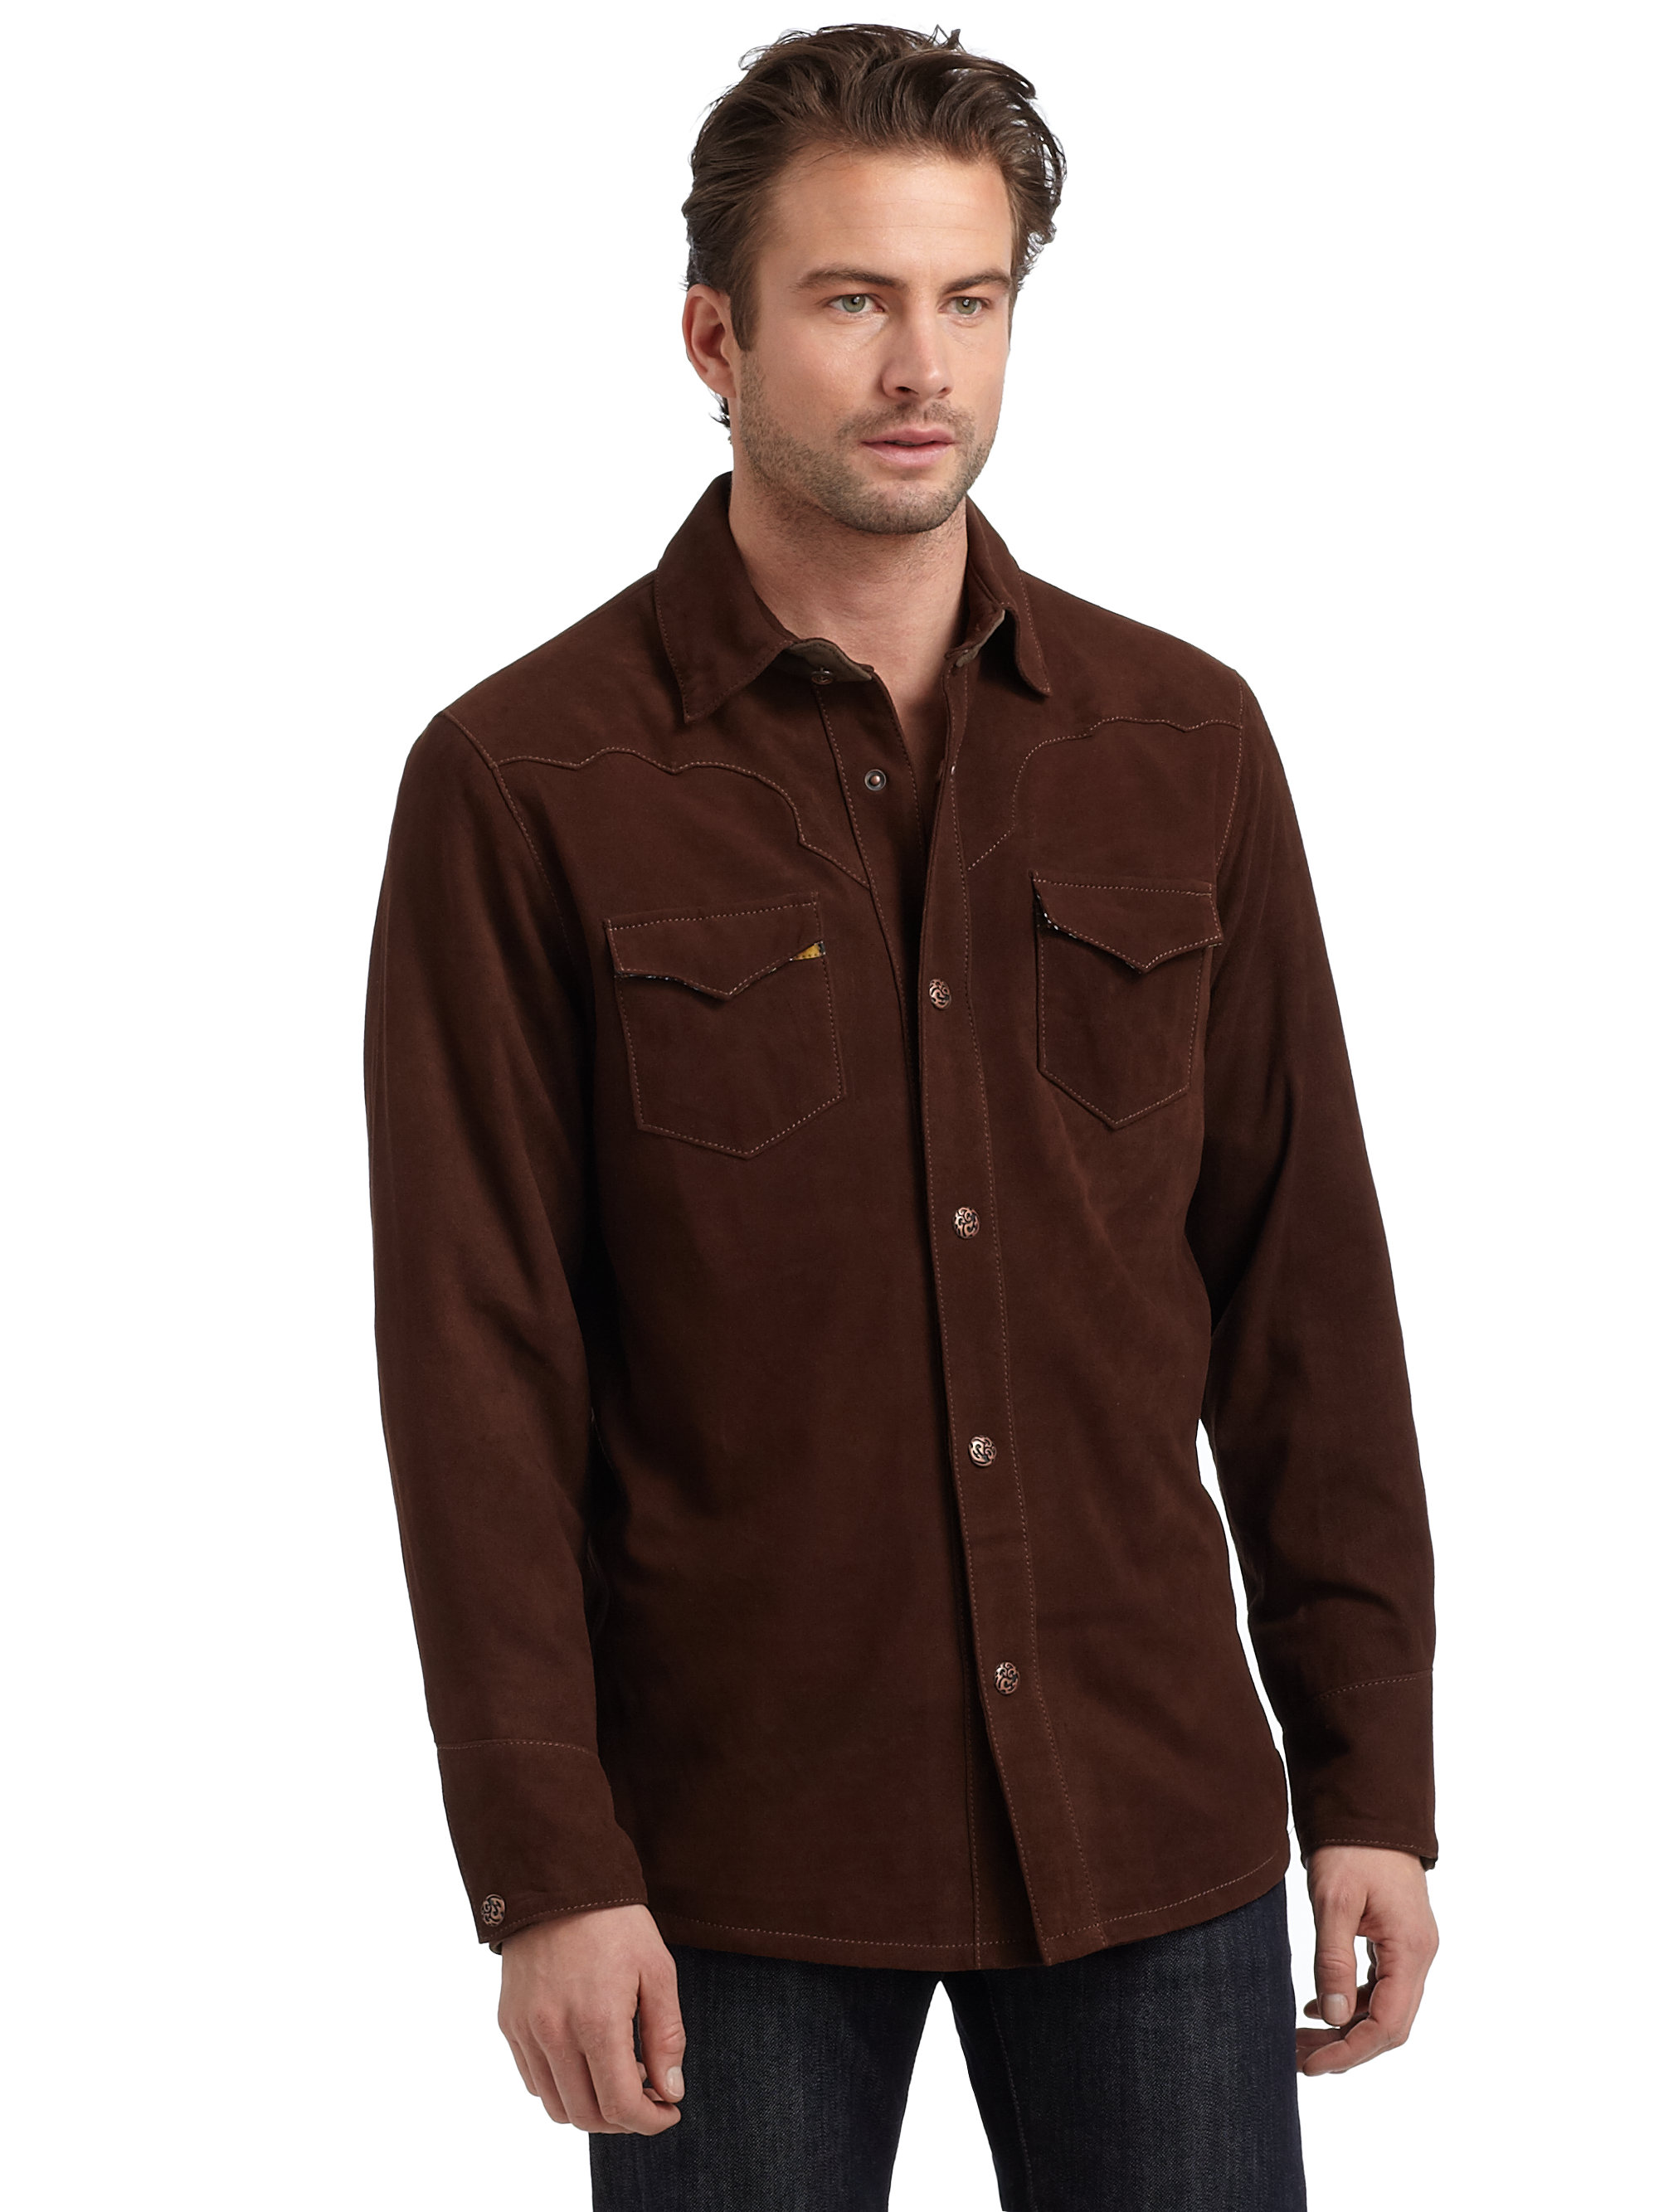 Robert graham Suede Button Down Shirt in Brown for Men | Lyst